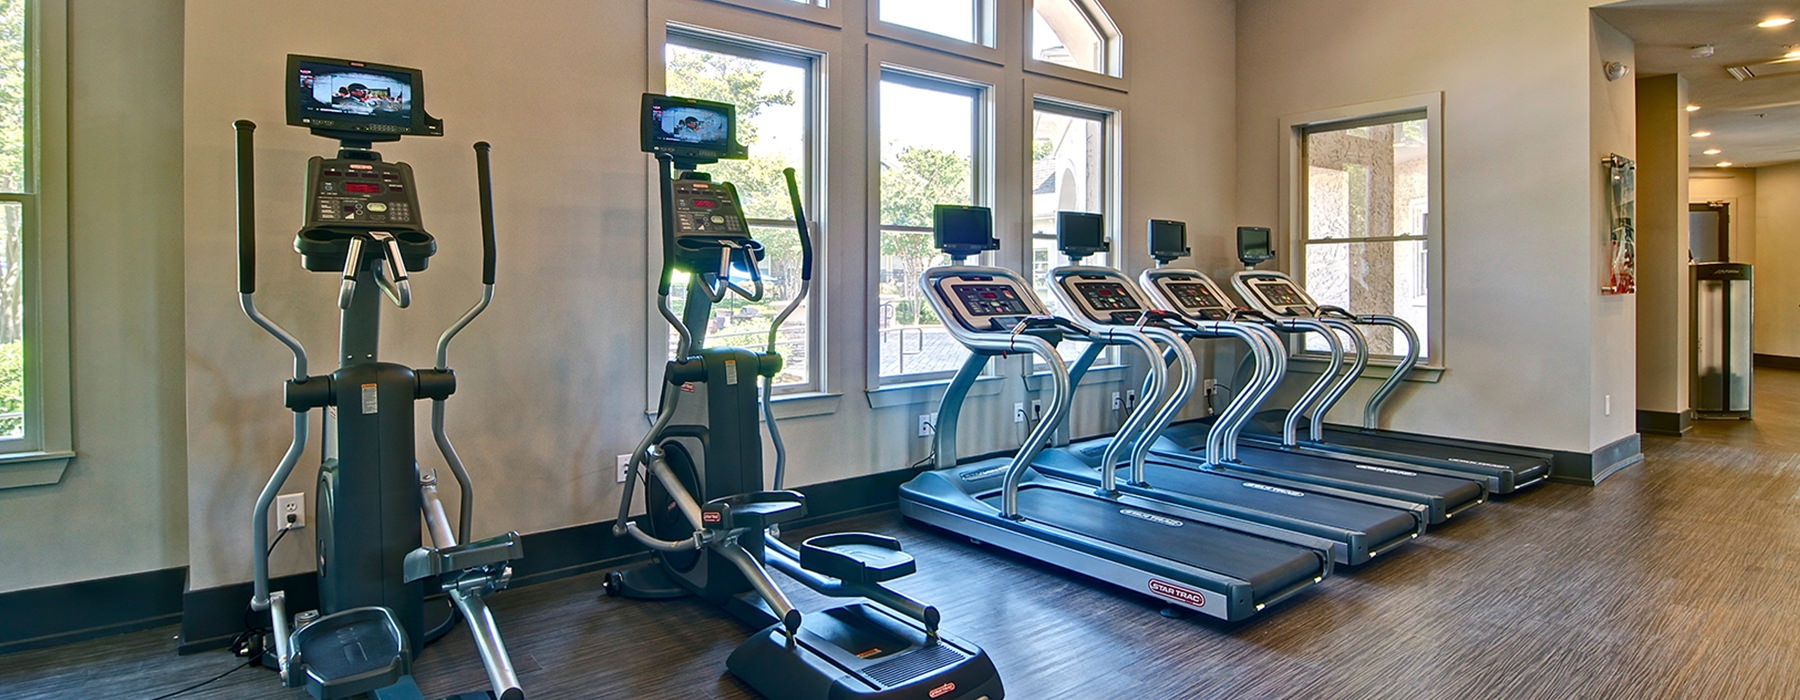 Ample treadmills with up-to-date equipment